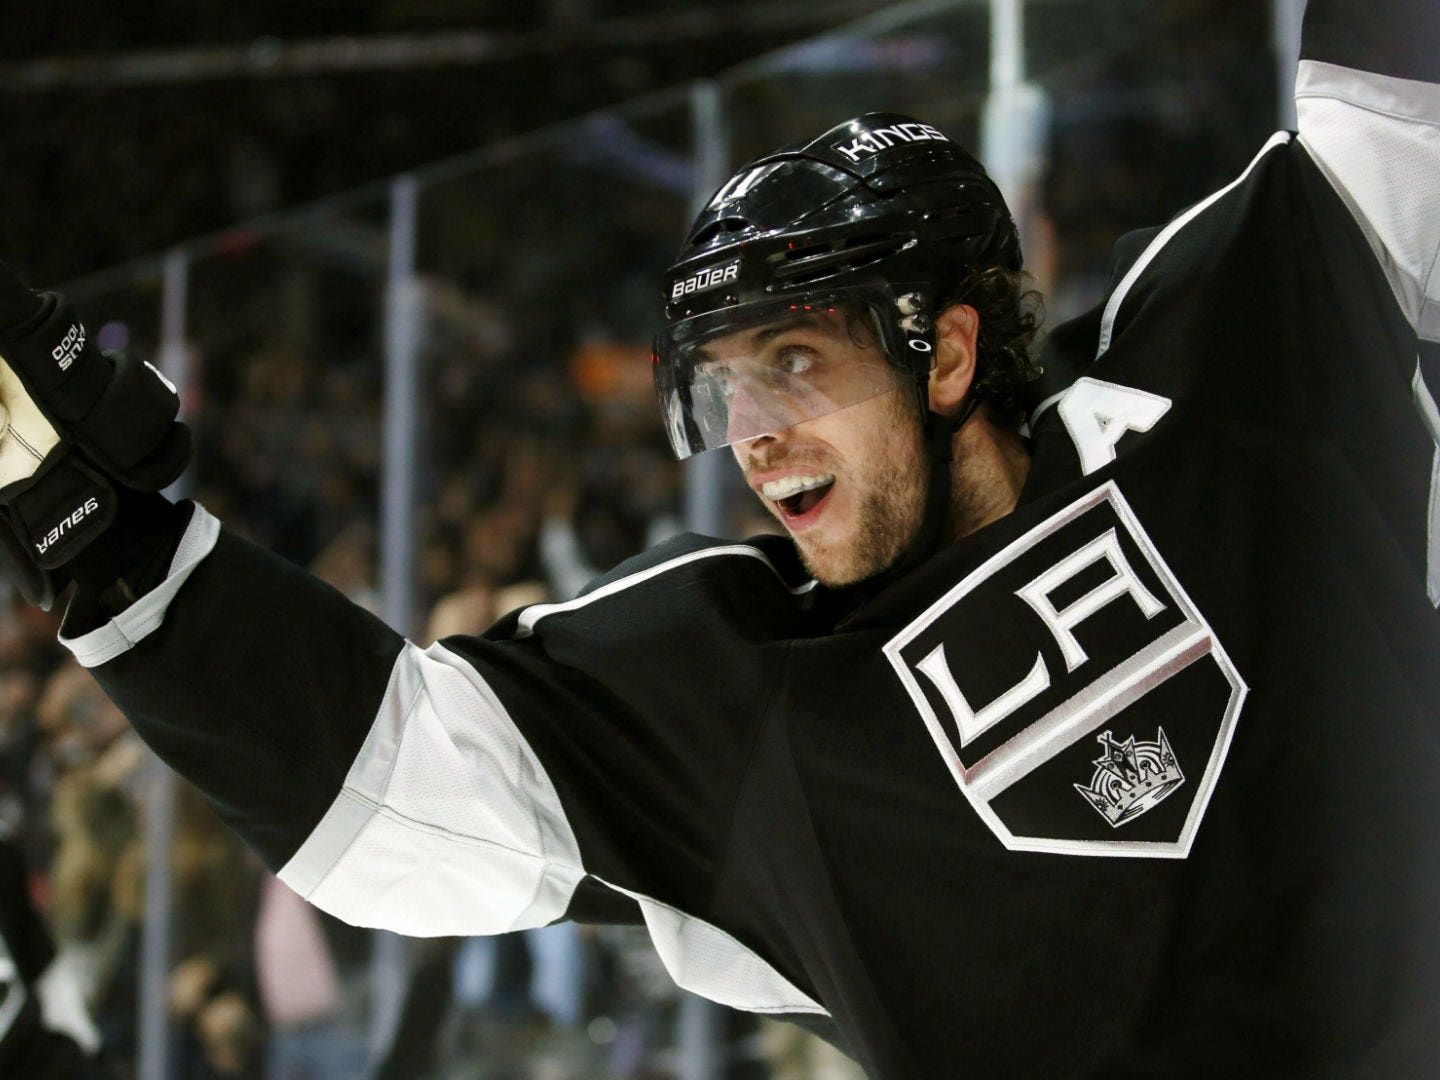 Main image for event titled L.A. Kings @ Anaheim Ducks